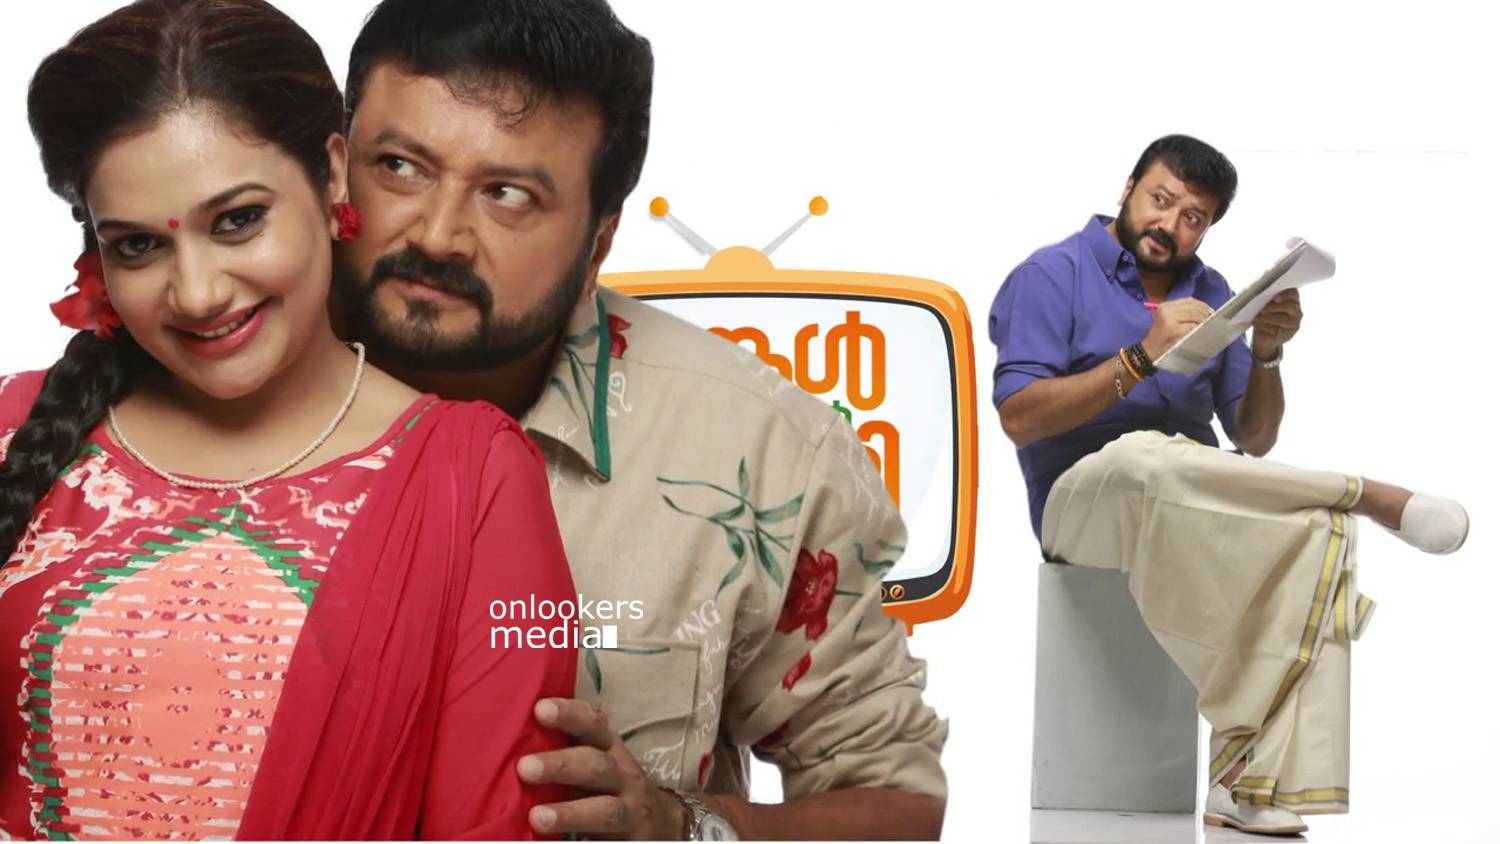 Thinkal Muthal Velli Vare Movie Stills-Jayaram-Anoop Menon-Rimi Tomy-Onlookers Media